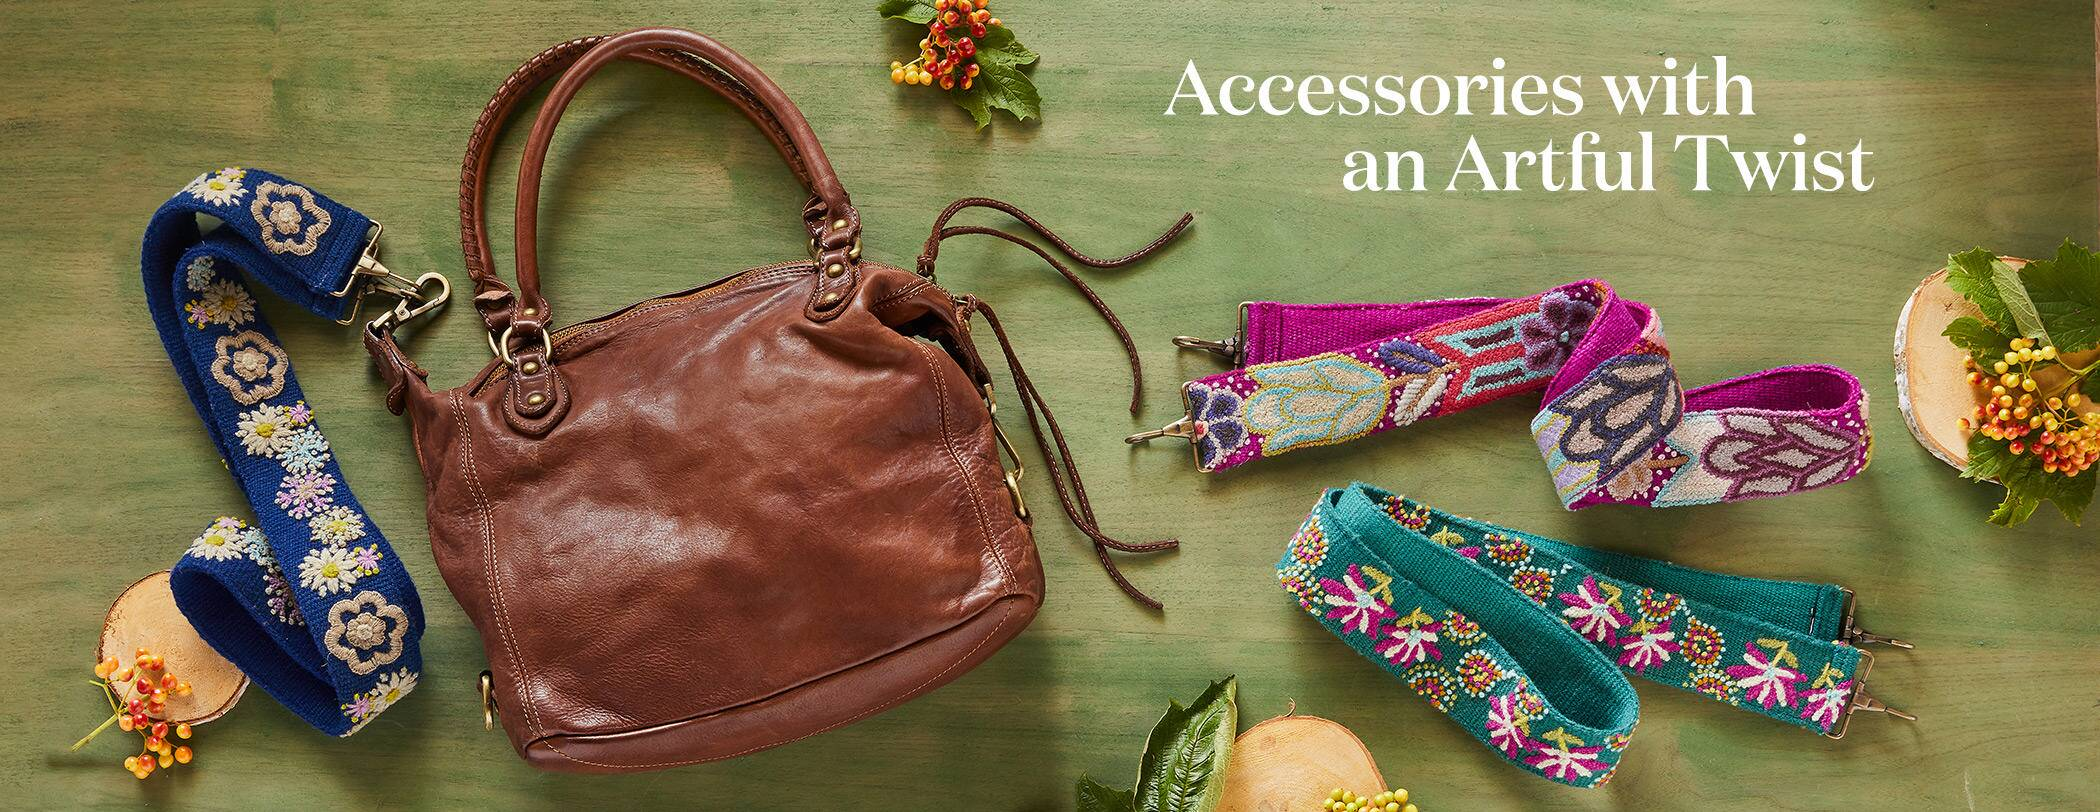 Accessories with an Artful Twist